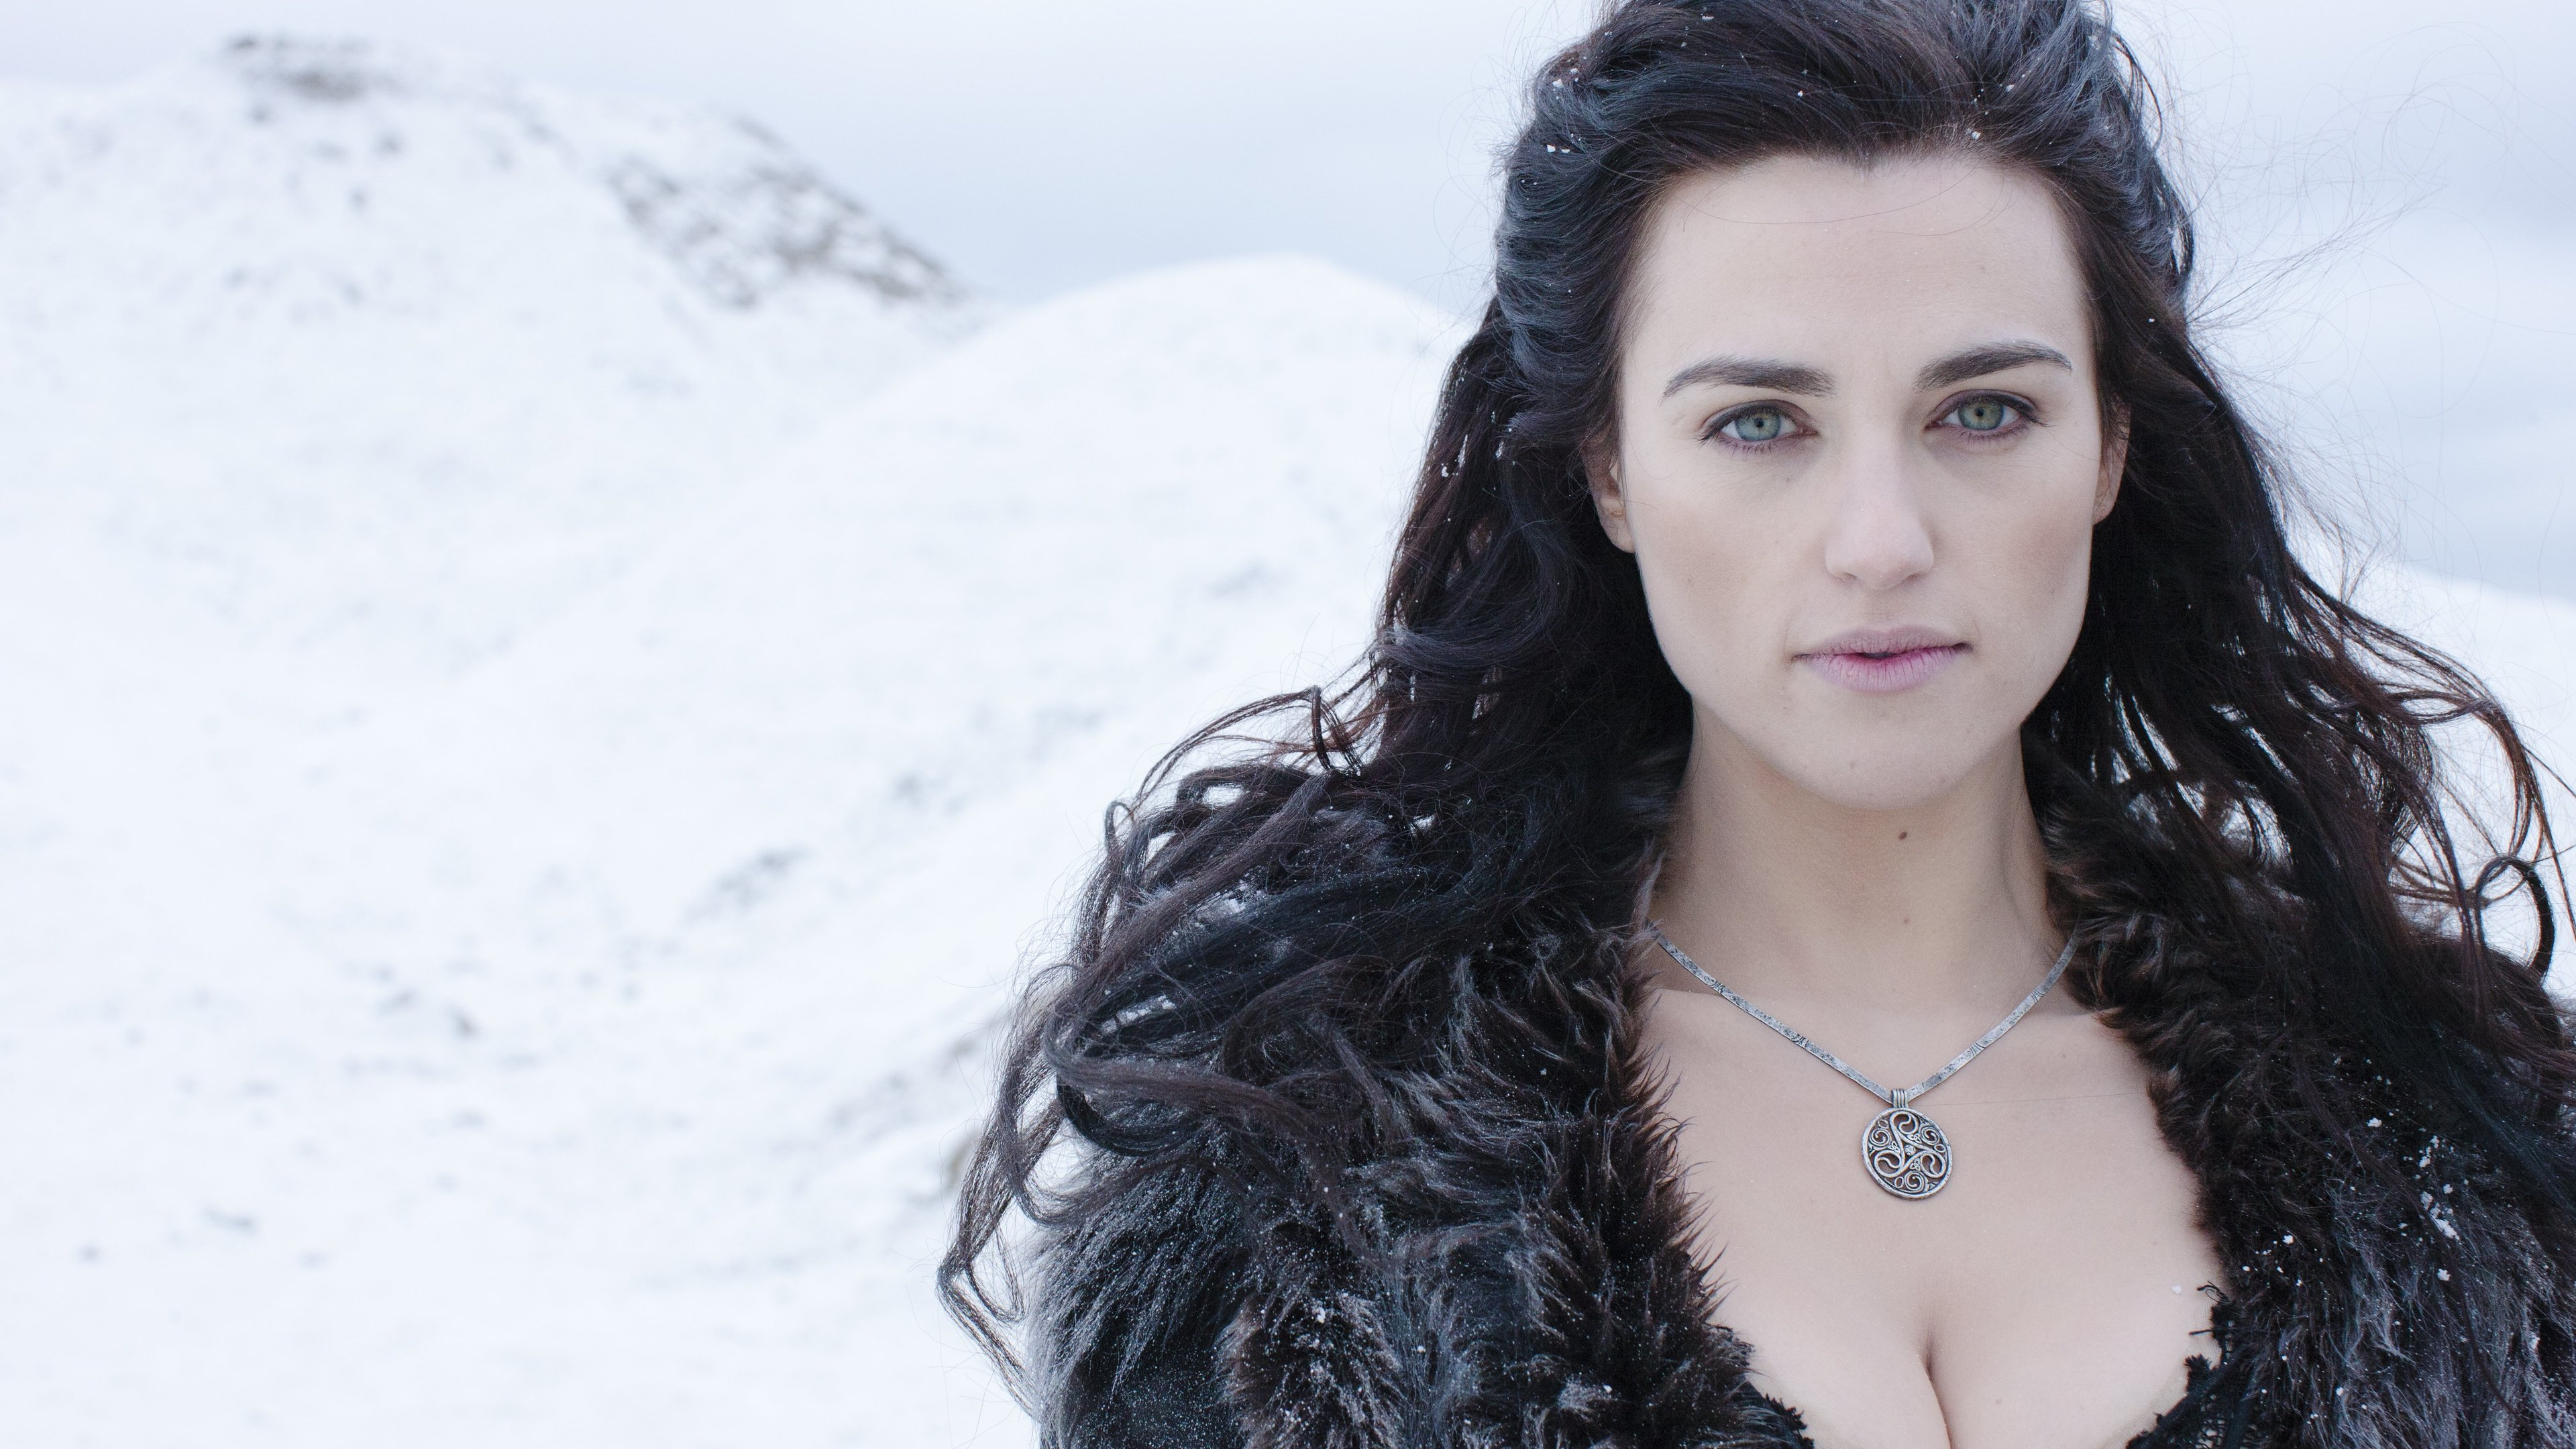 katie mcgrath 4k 5k 1536946267 - Katie McGrath 4k 5k - katie mcgrath wallpapers, hd-wallpapers, girls wallpapers, celebrities wallpapers, 5k wallpapers, 4k-wallpapers